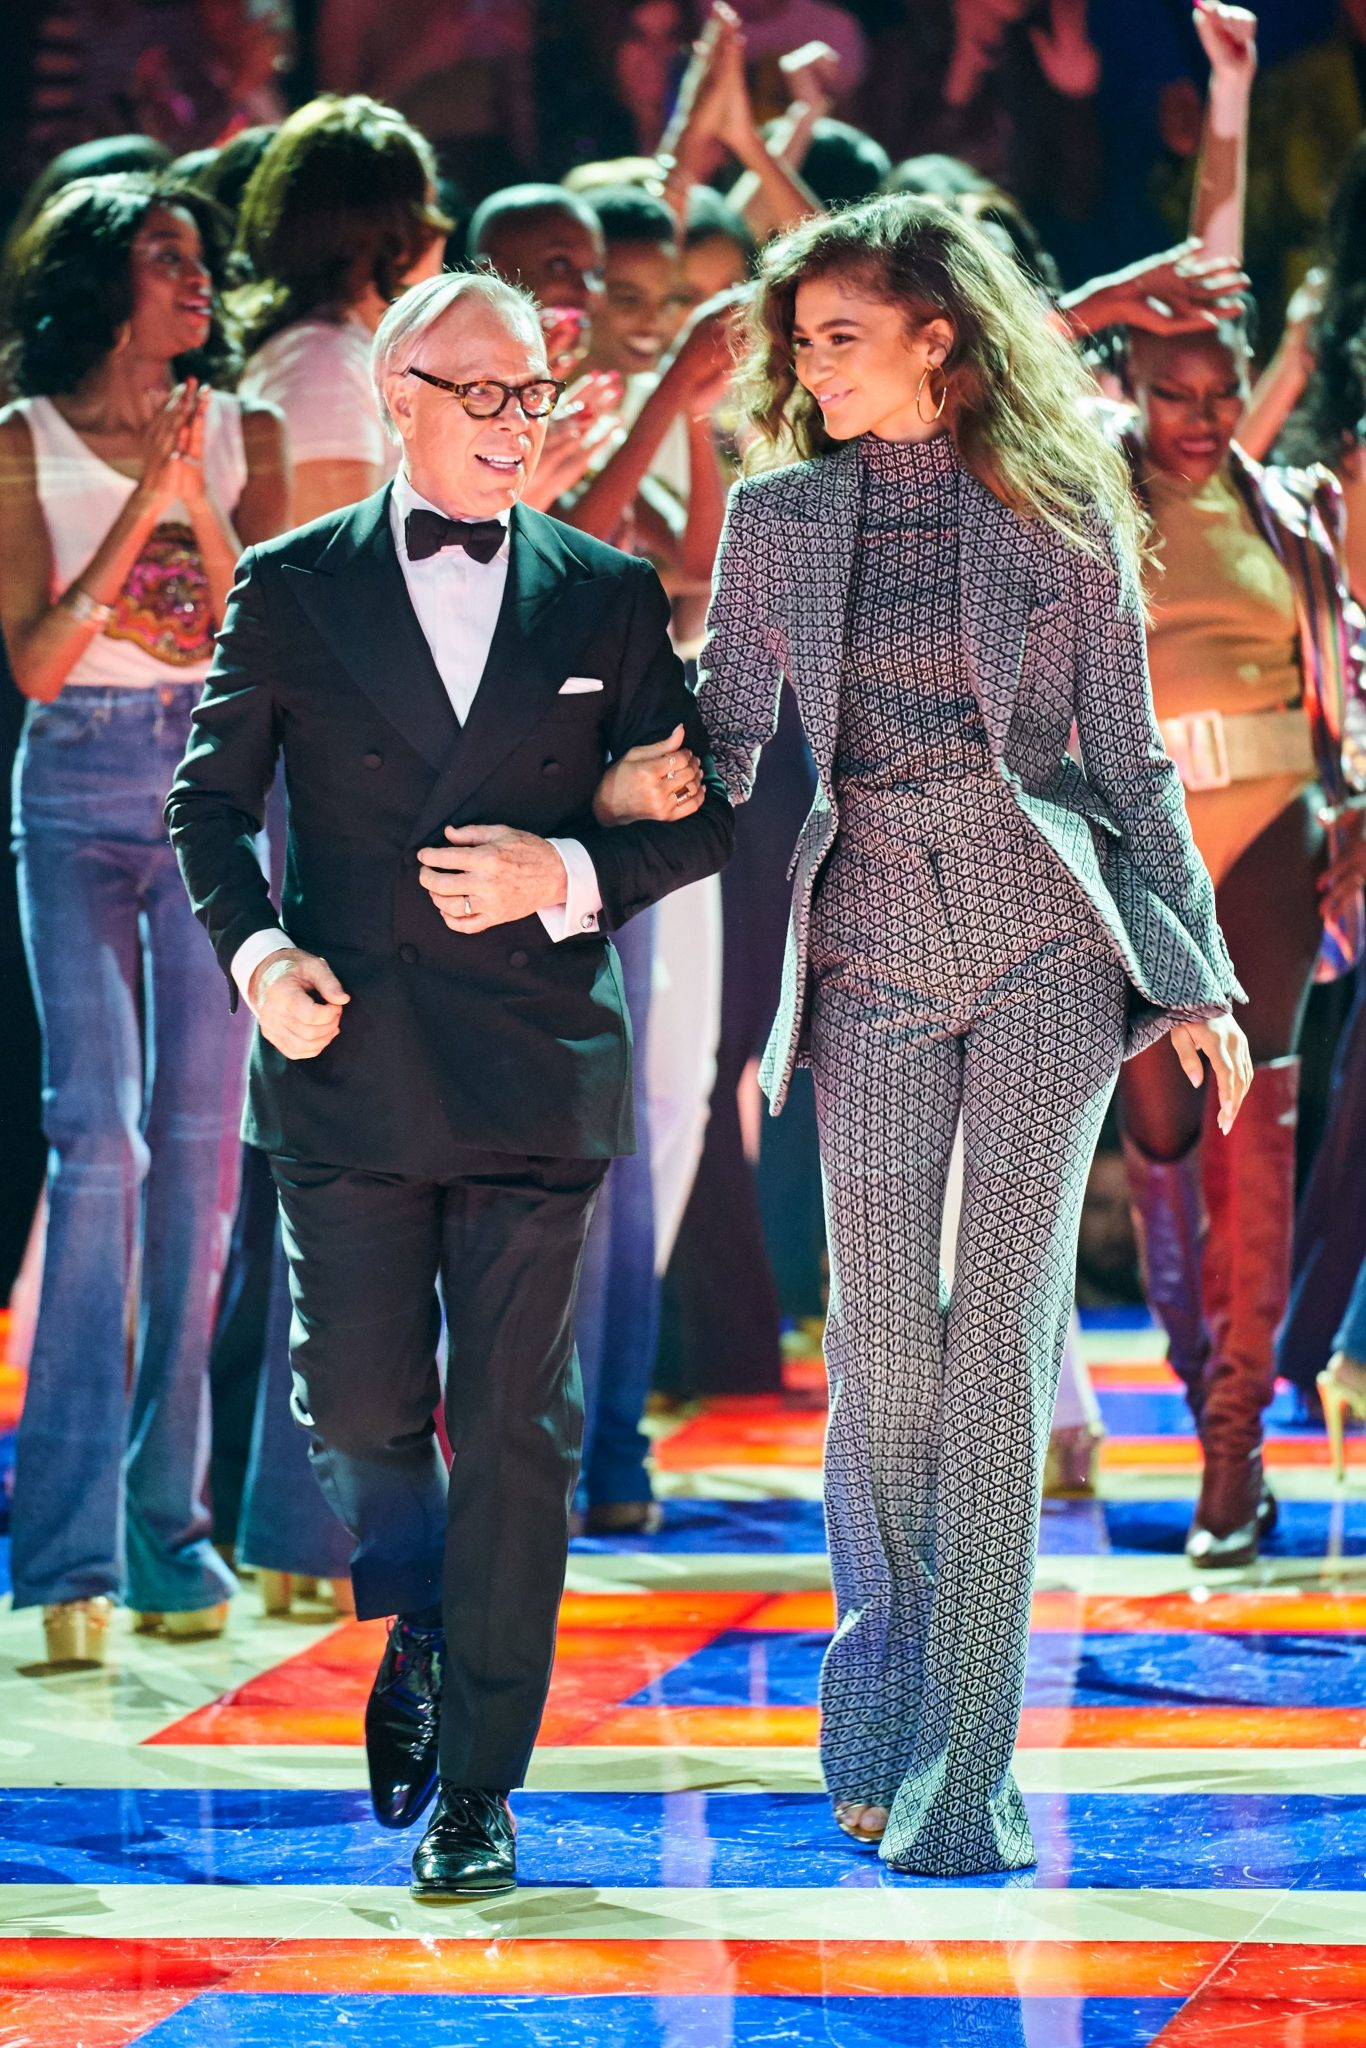 fc3a38f6891f3 Zendaya is truly giving plus size contemporary fashion a few more great  options! Zendaya x Tommy Hilfiger collection